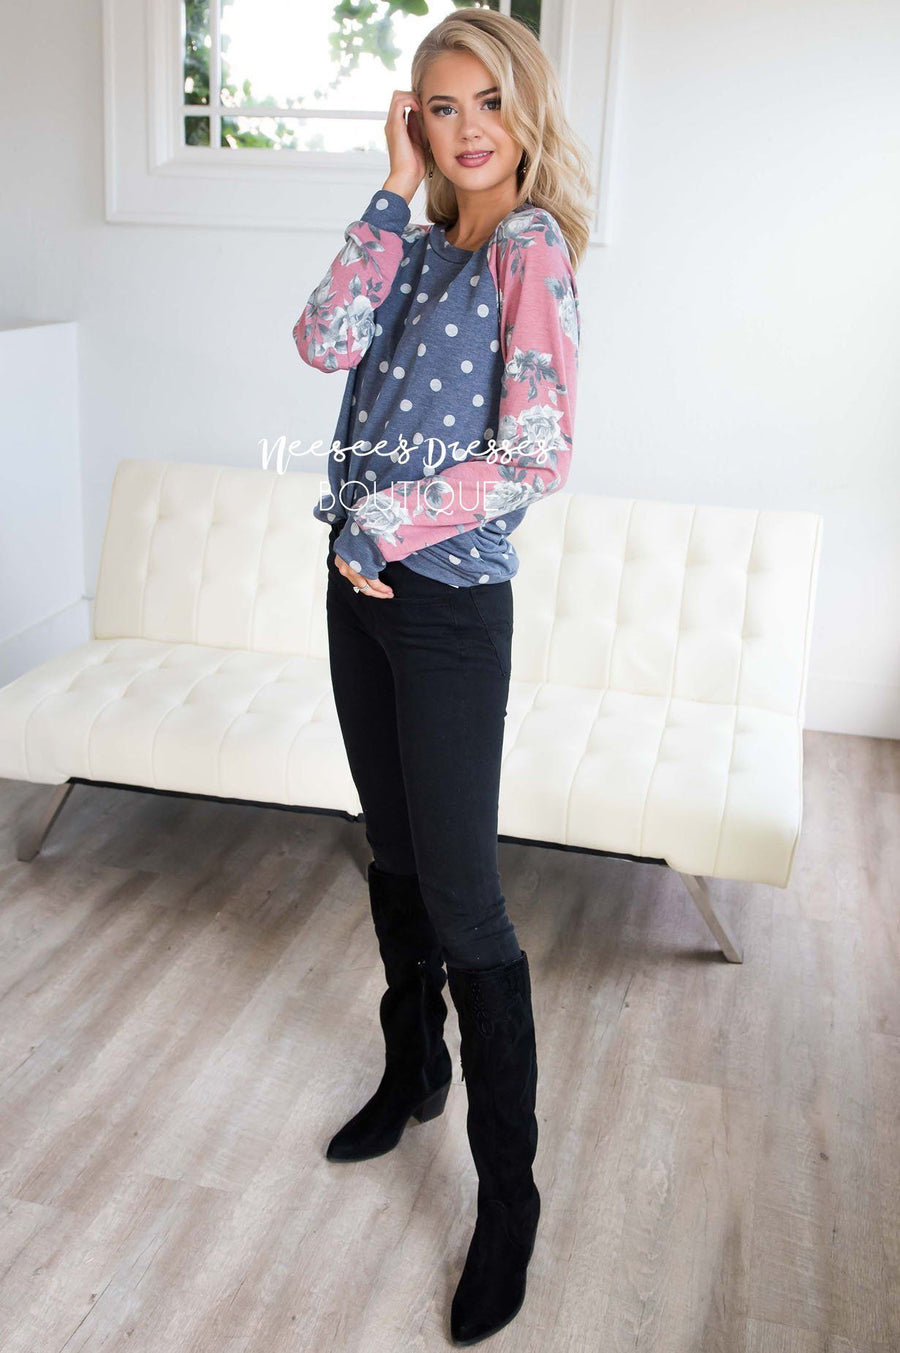 Floral Sleeve & Polka Dot Top